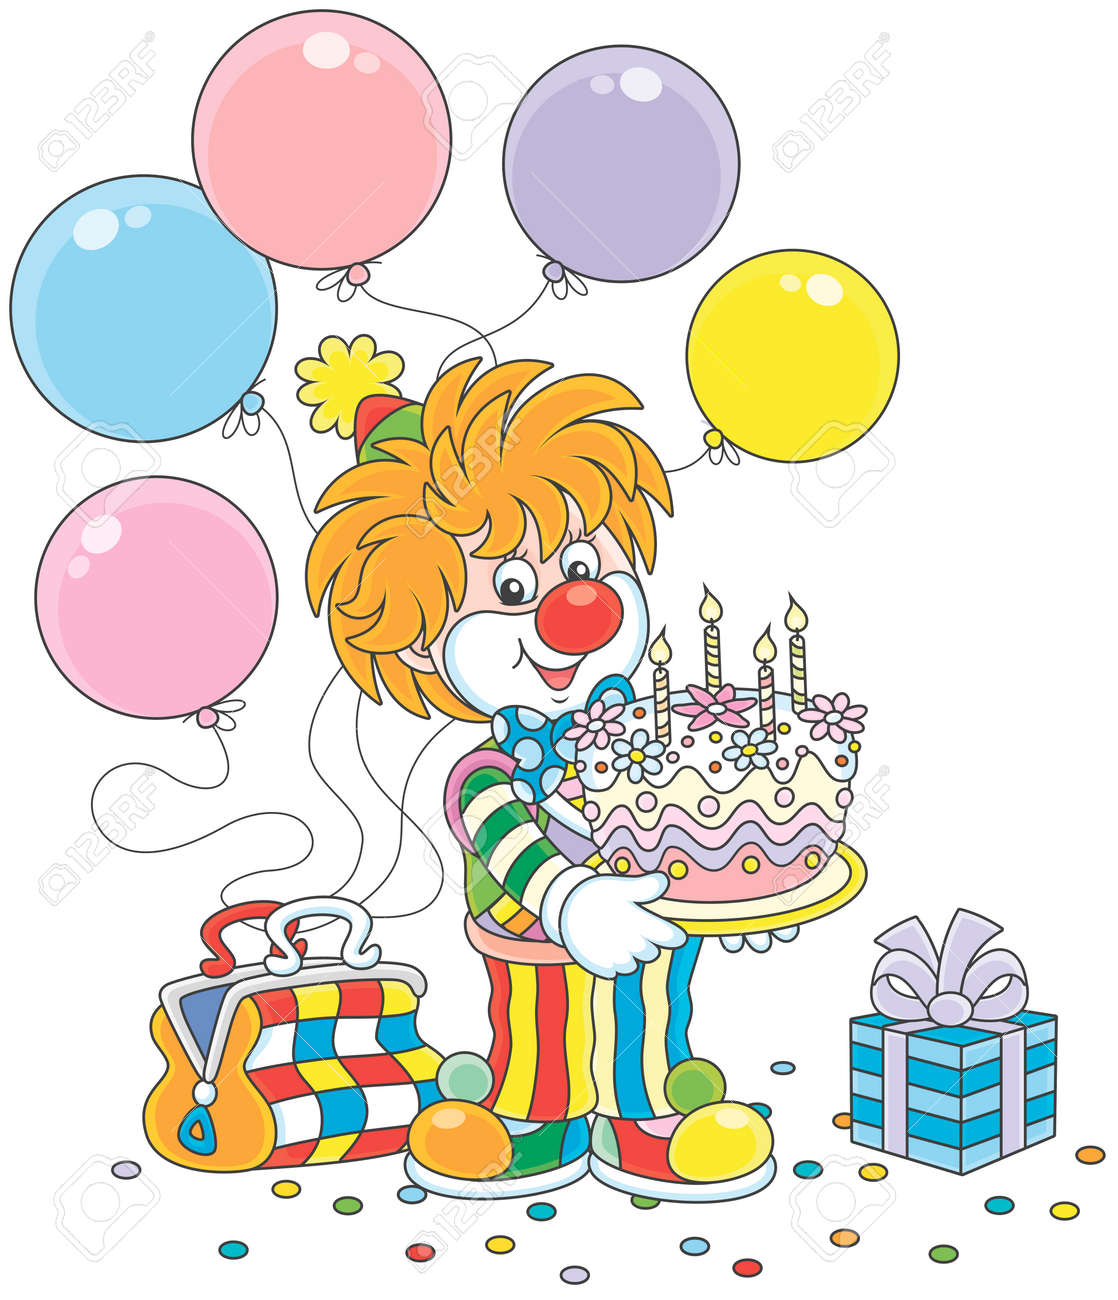 Circus Clown With A Birthday Cake Balloons And A Gift Royalty Free